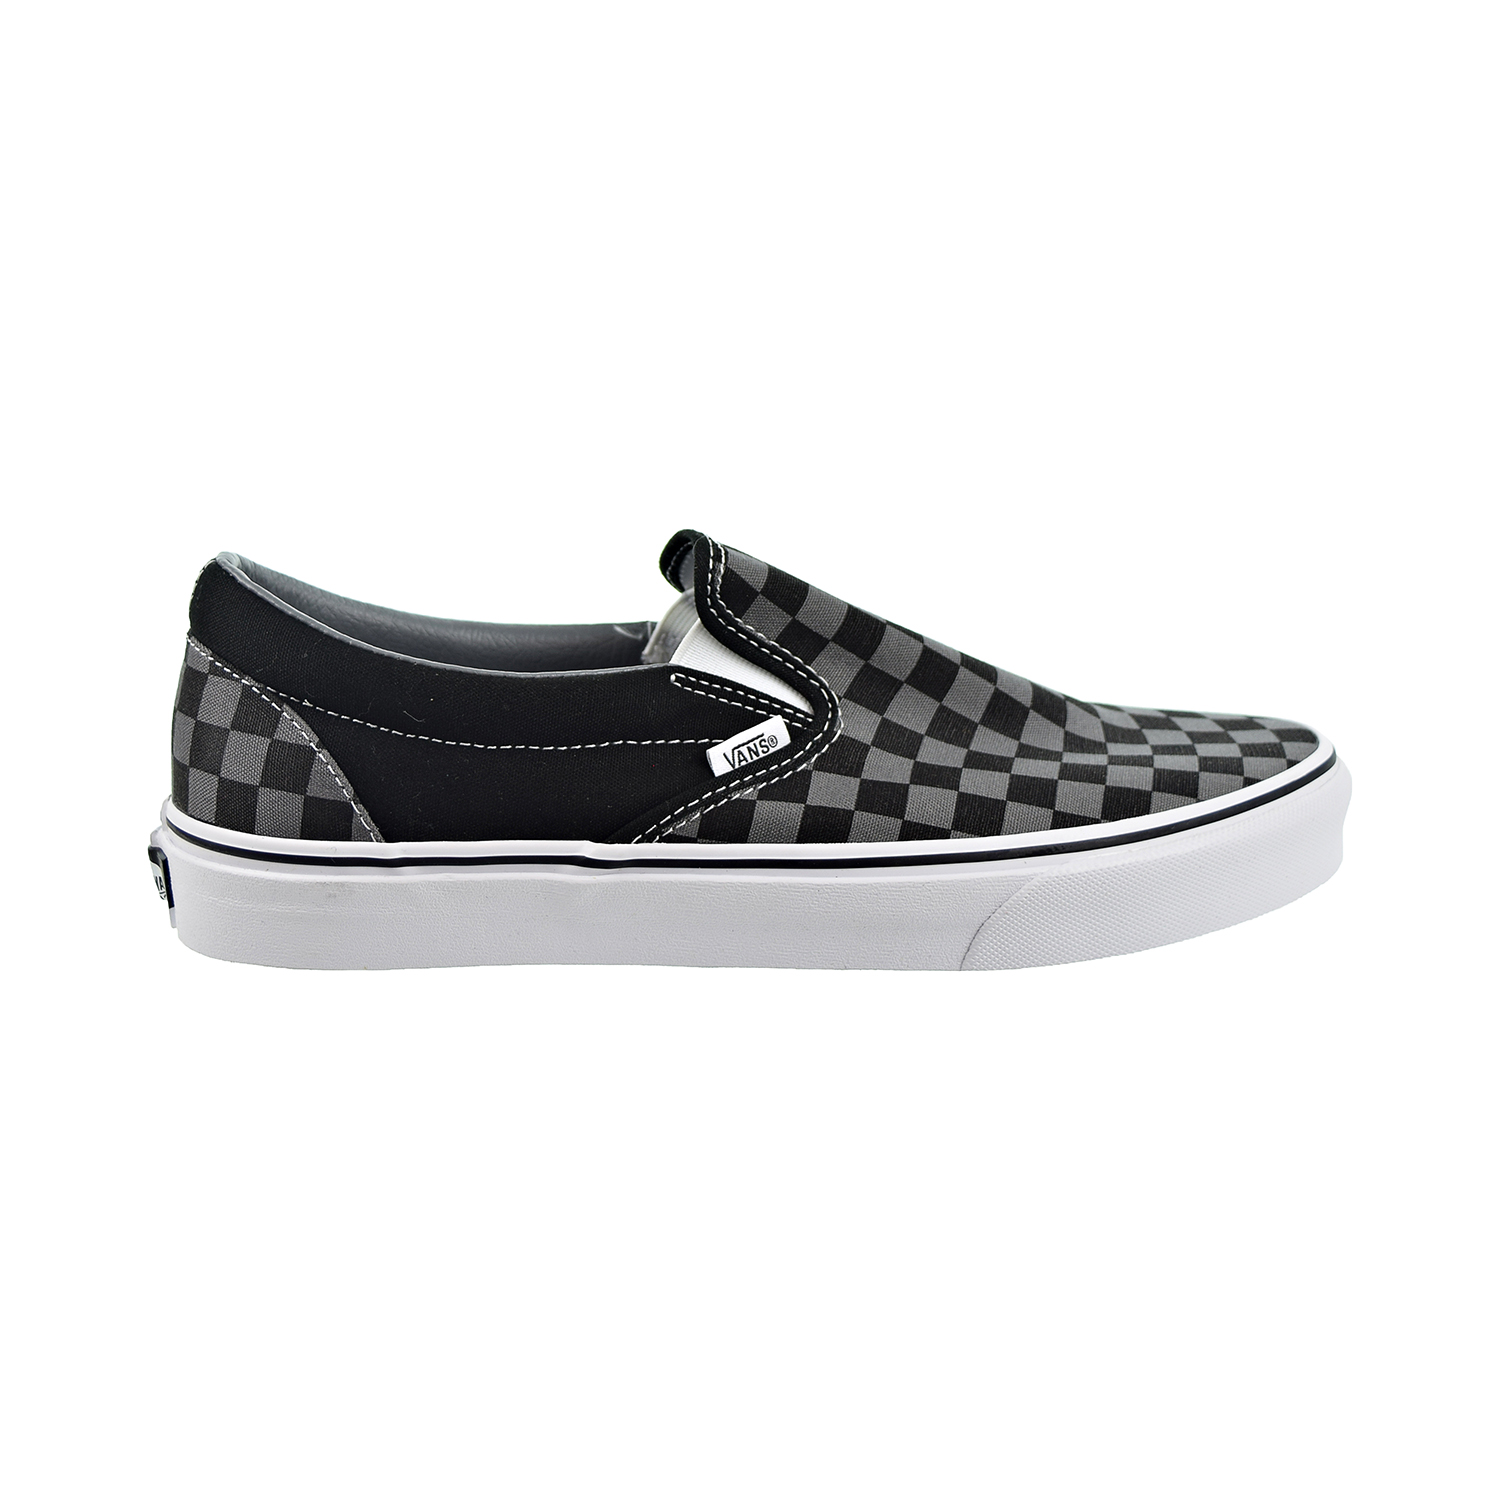 Details about Vans Classic Slip-On Mens Shoes Black-Pewter Checkerboard VN000EYE-BPJ